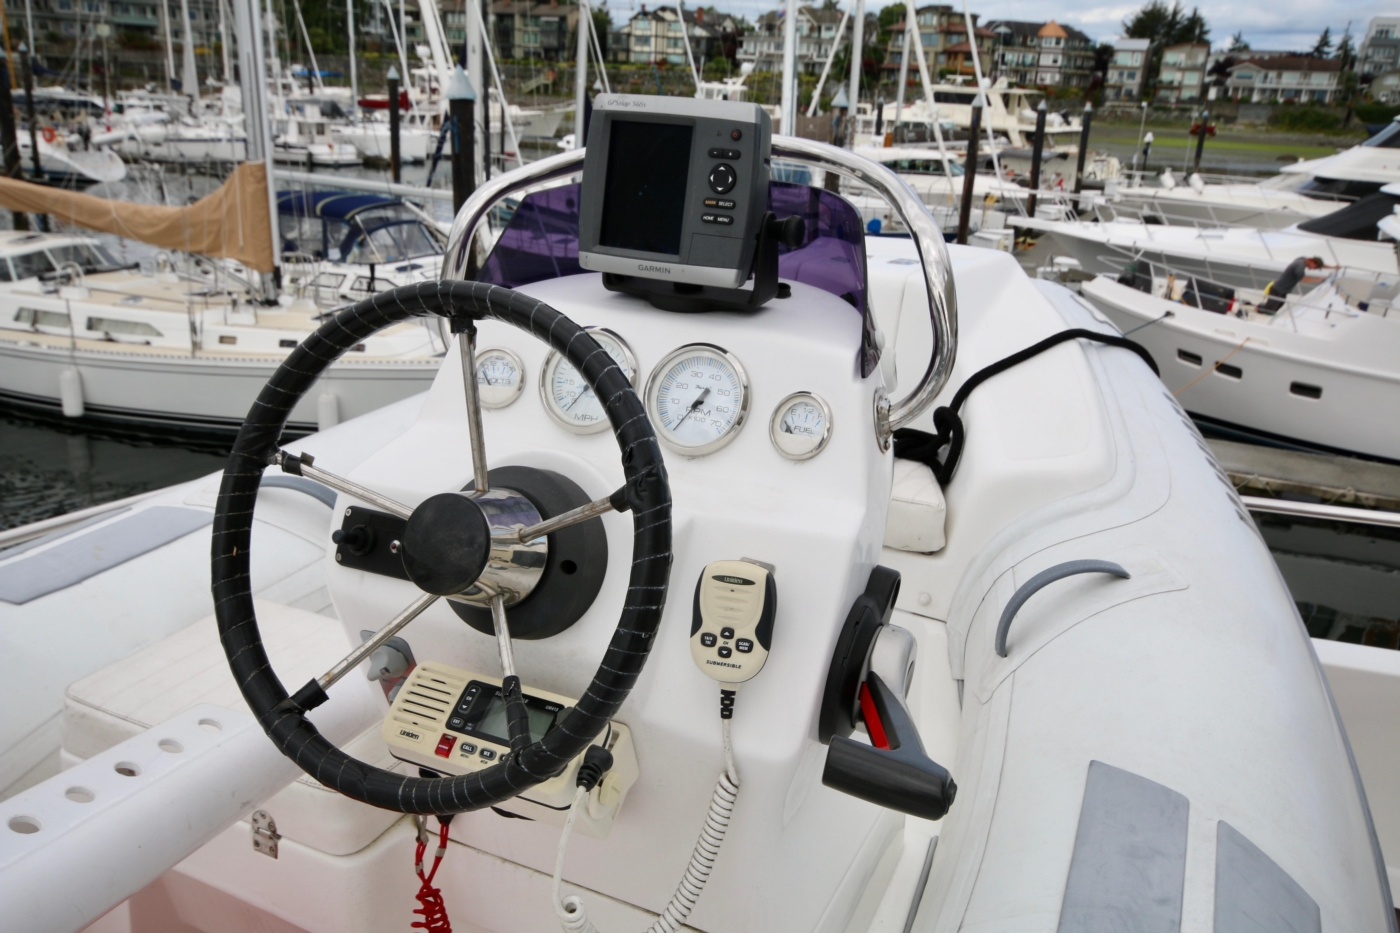 2002 Monte Fino 68, Well-Equipped Caribe 14' Tender